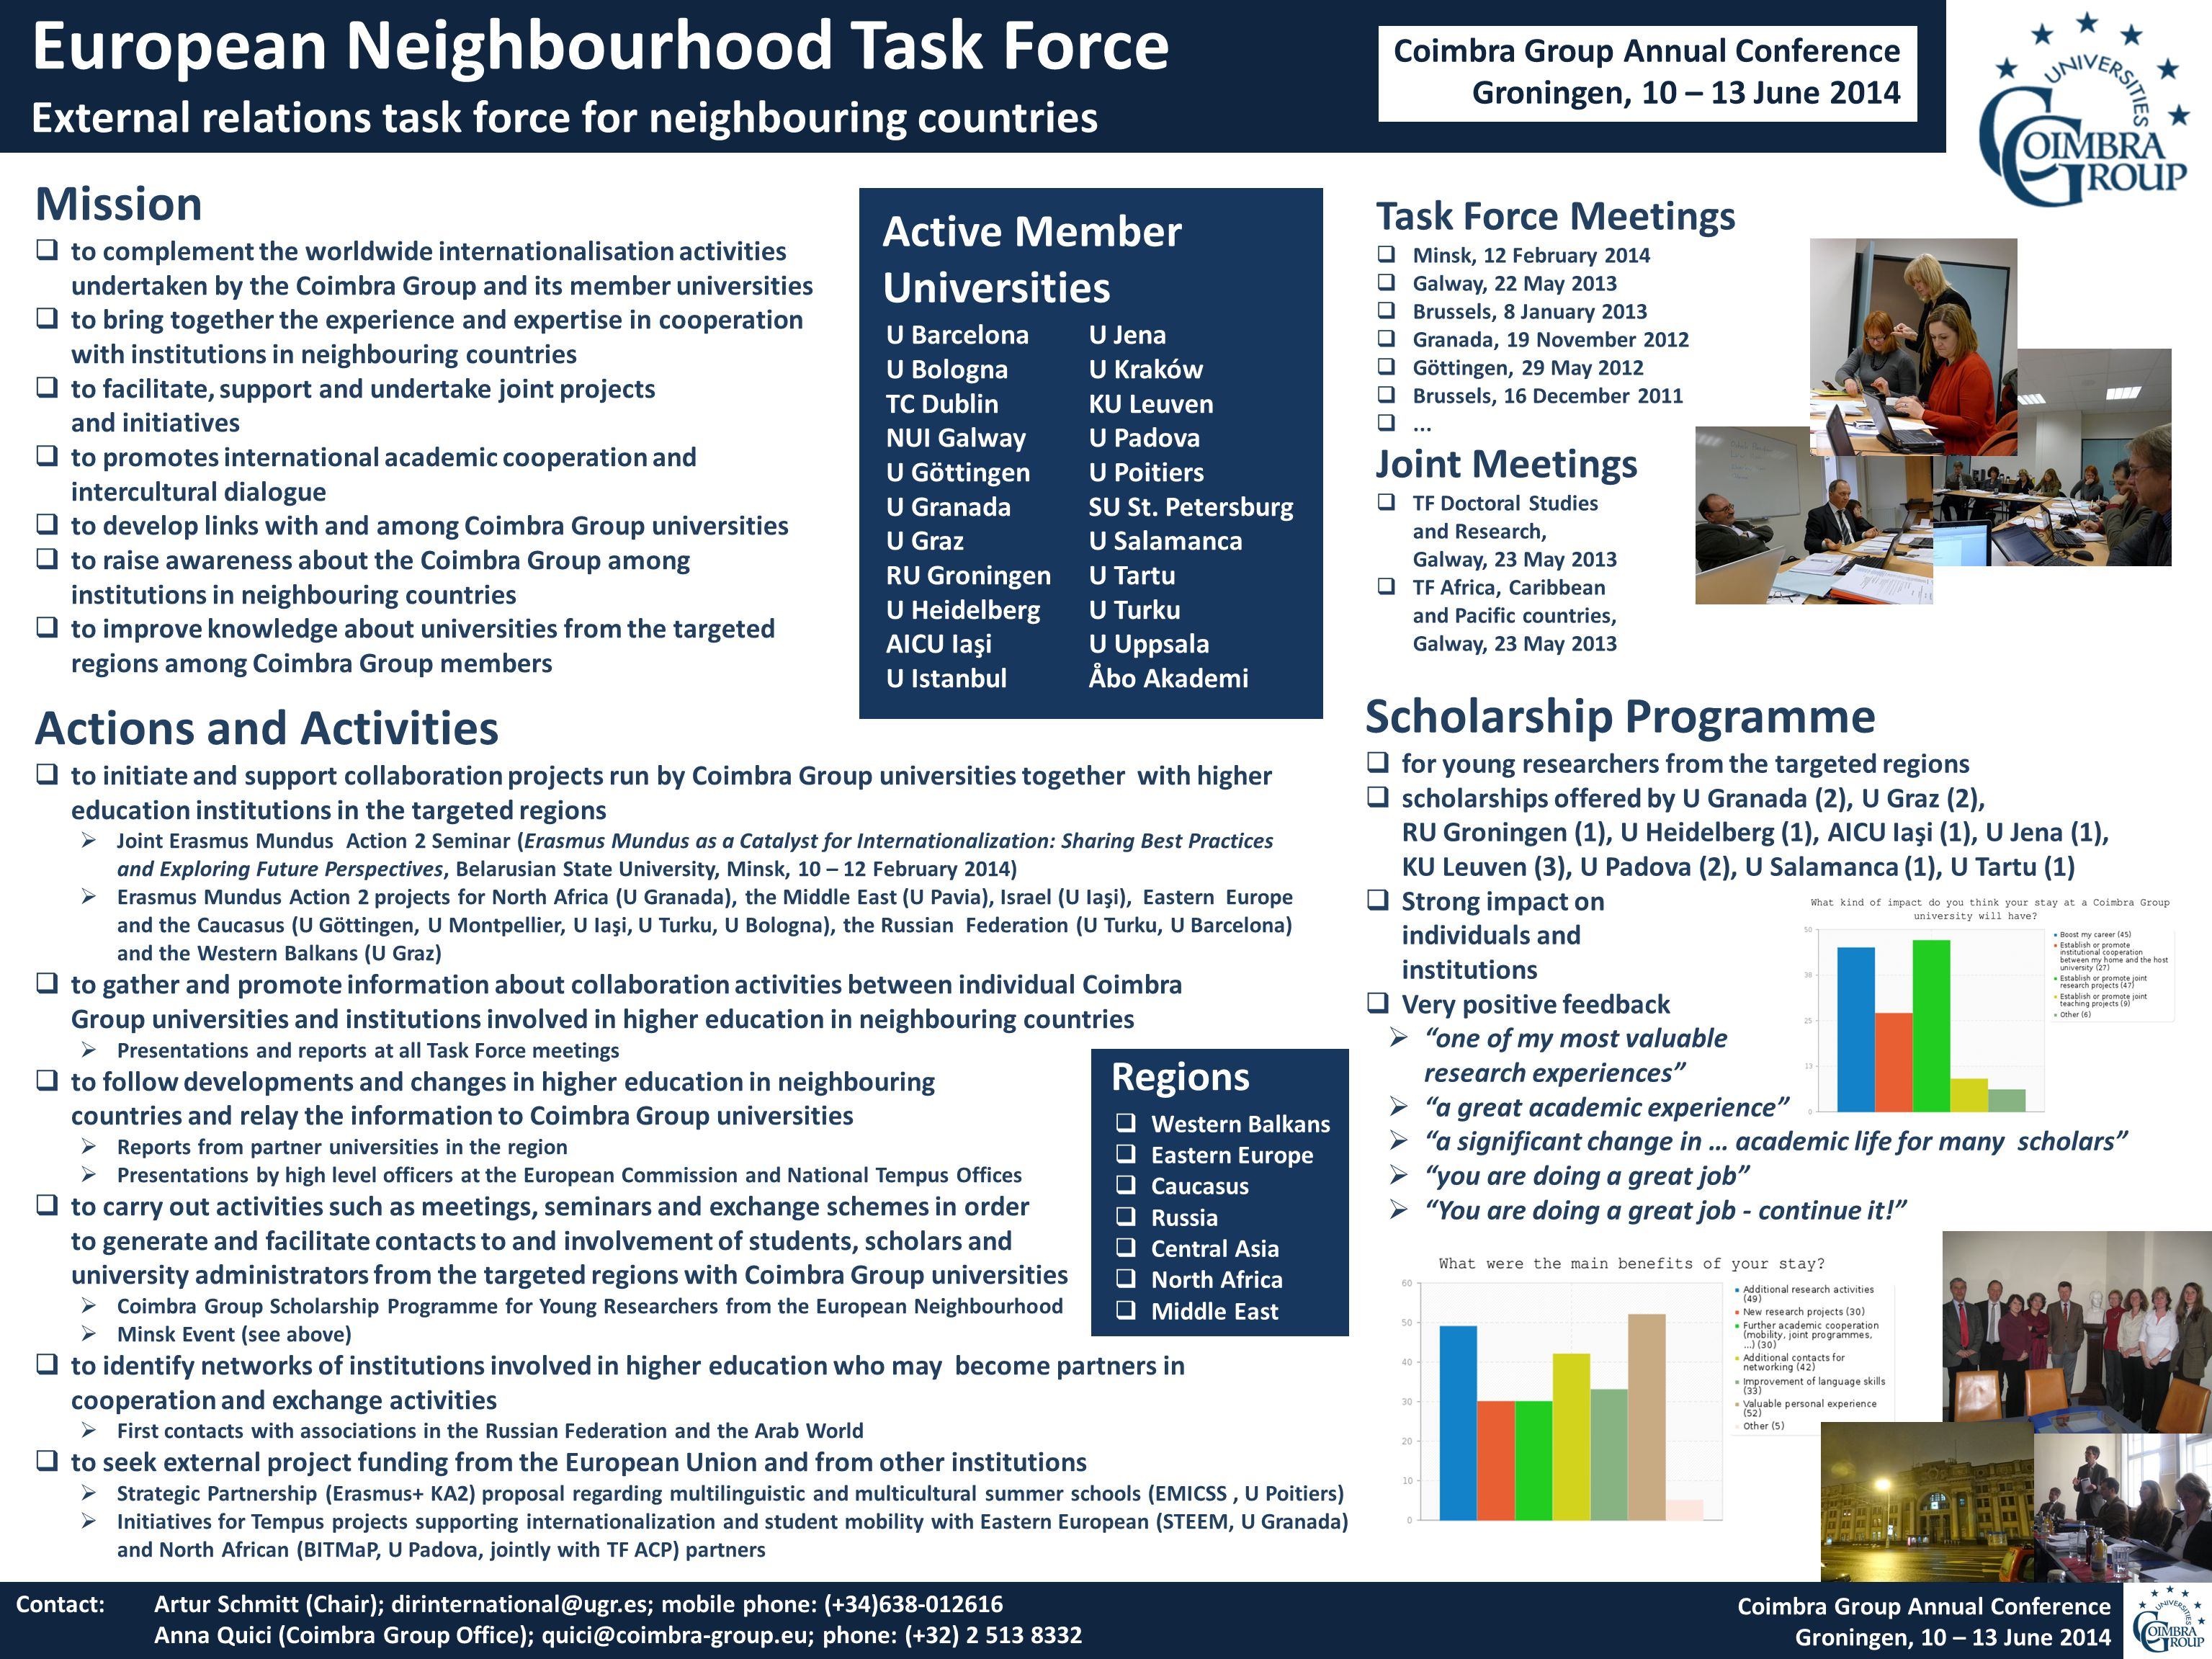 European Neighbourhood Task Force External relations task force for neighbouring countries Contact: Artur Schmitt (Chair); dirinternational@ugr.es; mobile phone: (+34)638-012616 Anna Quici (Coimbra Group Office); quici@coimbra-group.eu; phone: (+32) 2 513 8332 Coimbra Group Annual Conference Groningen, 10 – 13 June 2014 Mission  to complement the worldwide internationalisation activities undertaken by the Coimbra Group and its member universities  to bring together the experience and expertise in cooperation with institutions in neighbouring countries  to facilitate, support and undertake joint projects and initiatives  to promotes international academic cooperation and intercultural dialogue  to develop links with and among Coimbra Group universities  to raise awareness about the Coimbra Group among institutions in neighbouring countries  to improve knowledge about universities from the targeted regions among Coimbra Group members Task Force Meetings  Minsk, 12 February 2014  Galway, 22 May 2013  Brussels, 8 January 2013  Granada, 19 November 2012  Göttingen, 29 May 2012  Brussels, 16 December 2011 ...